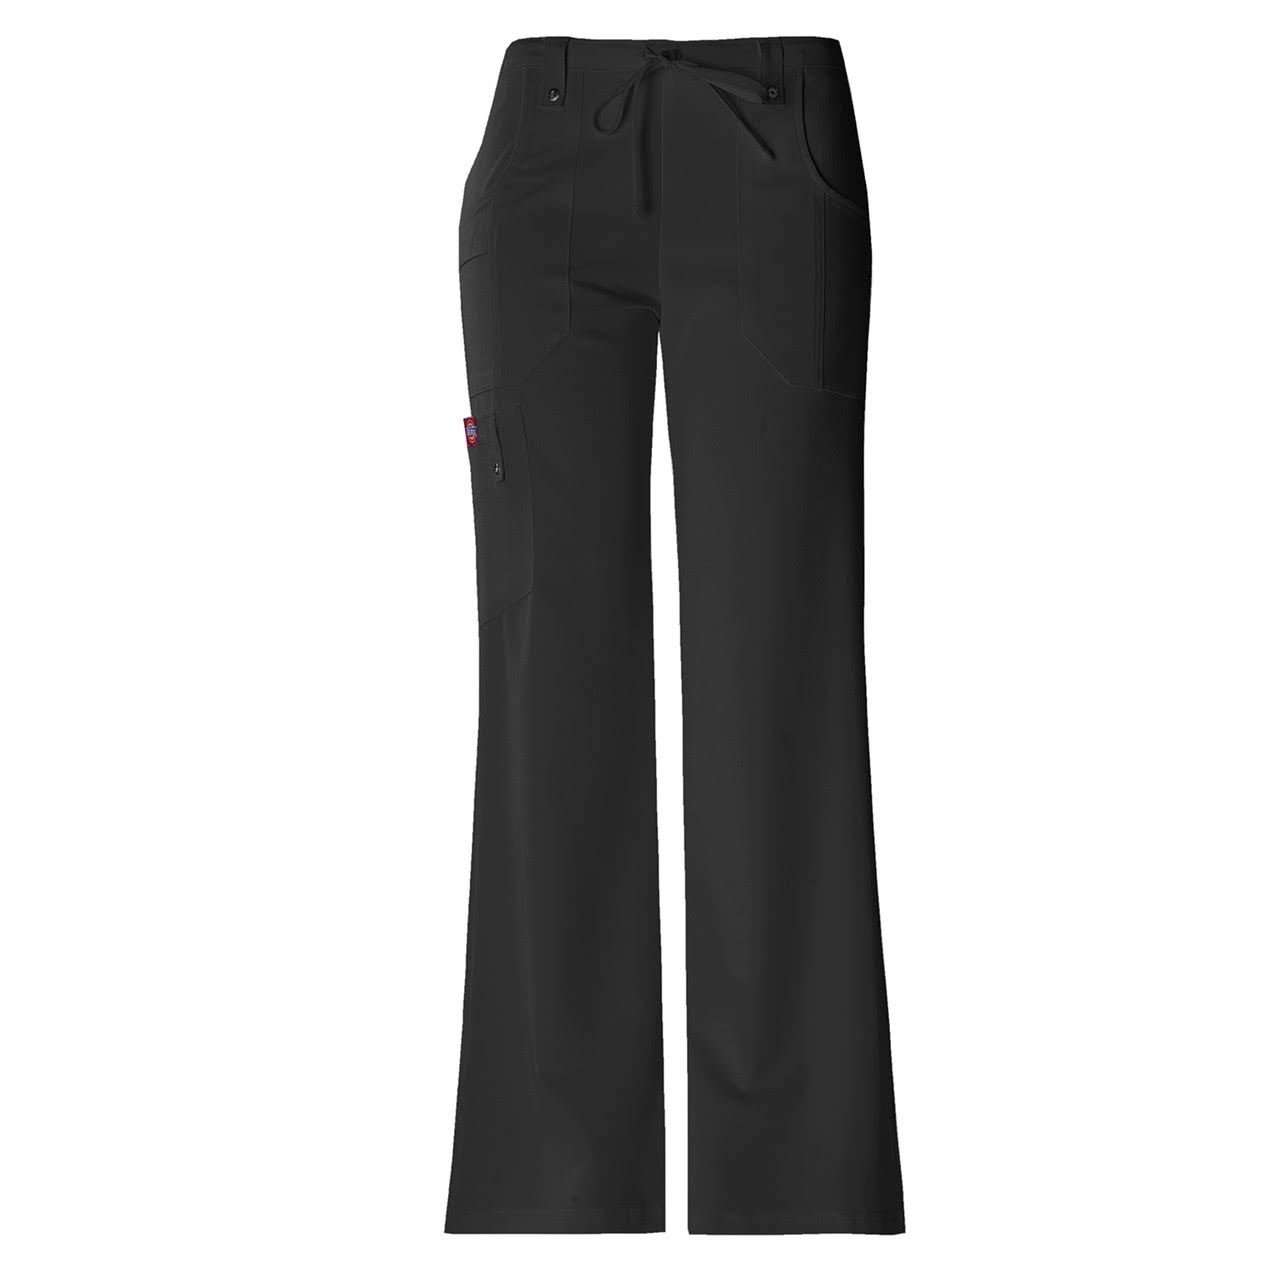 Dickies Women's Xtreme Stretch Drawstring Flare Scrubs Pant - Black